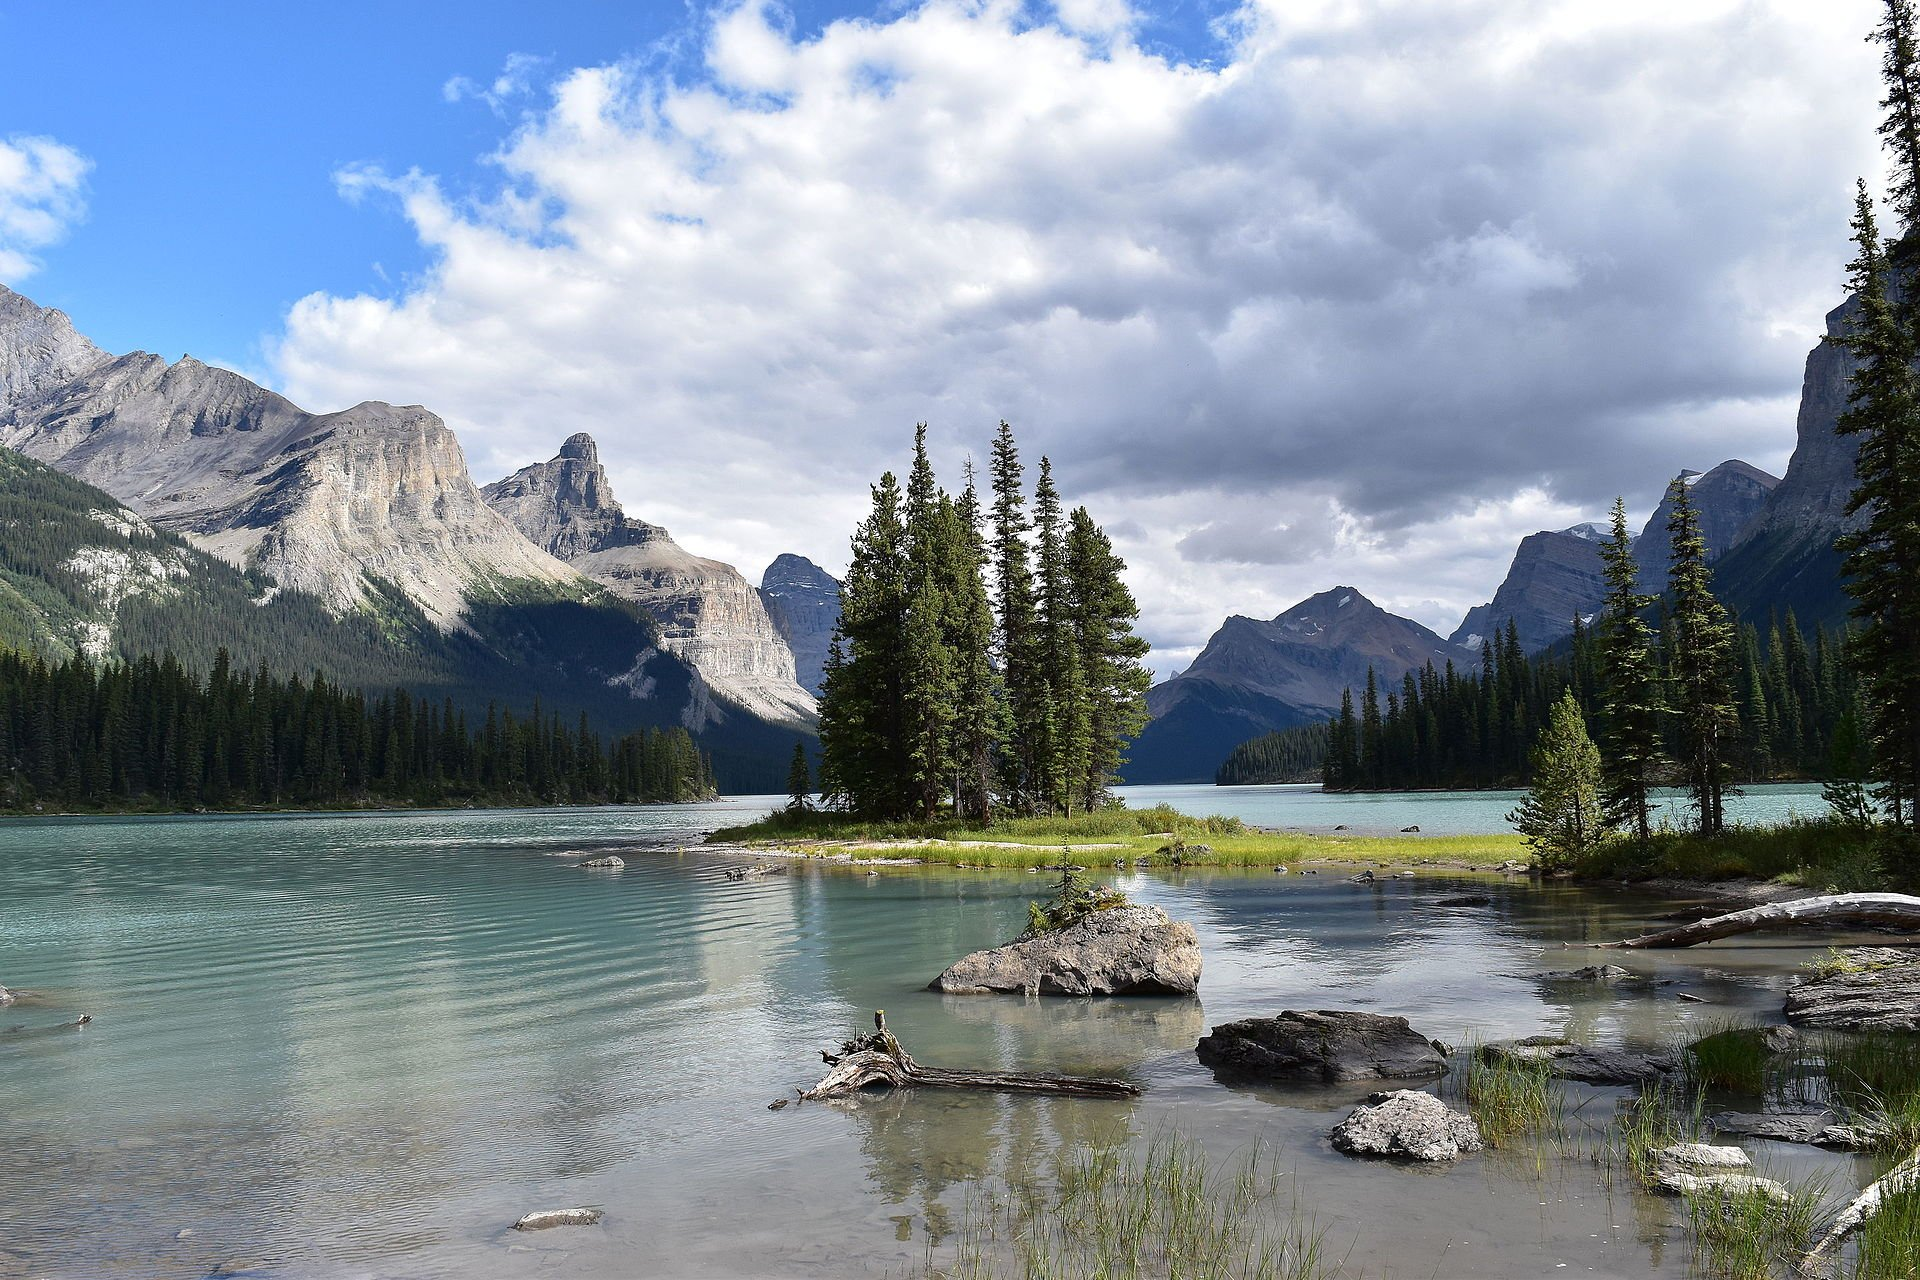 Lake Minnewanka Cruise in Banff & Jasper National Parks - Best Season 2020